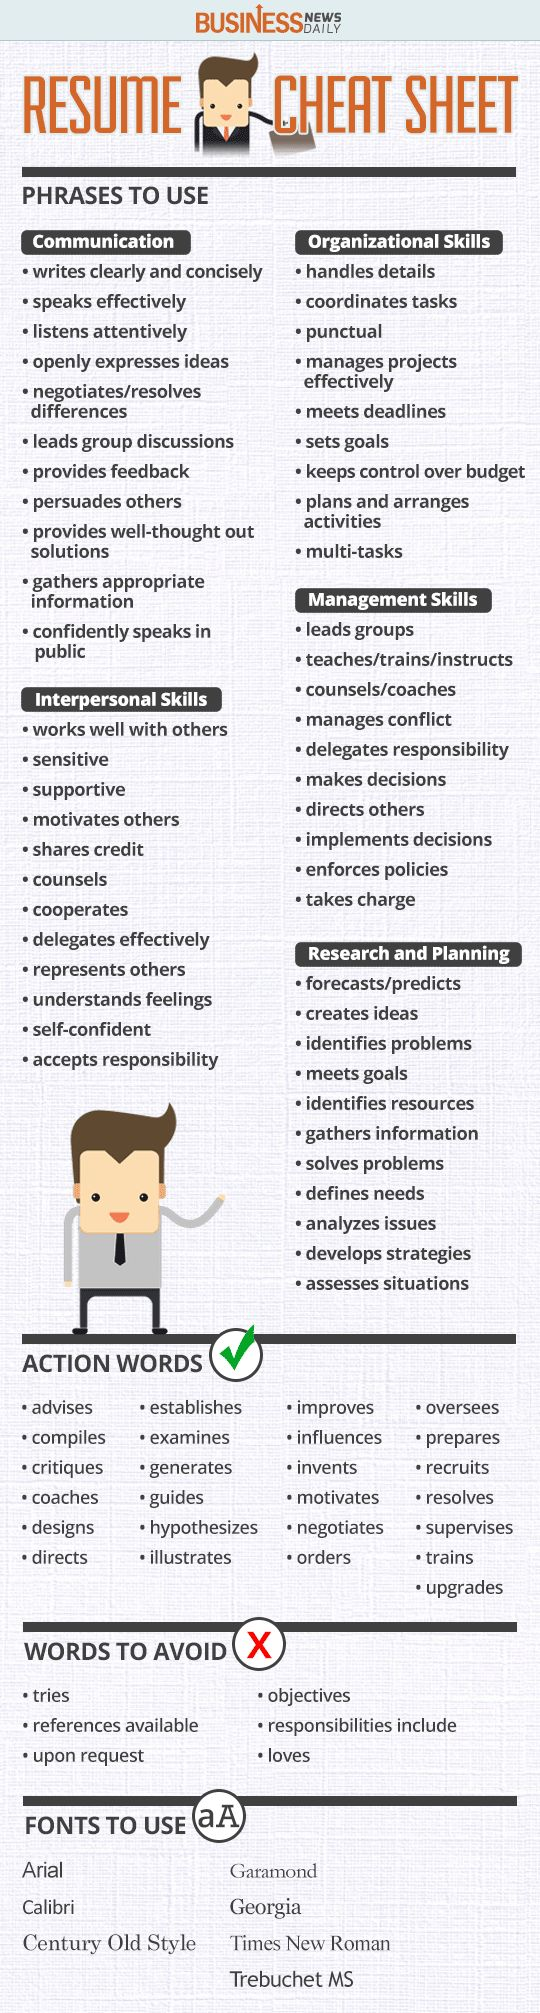 Opposenewapstandardsus  Winsome  Ideas About Resume On Pinterest  Cv Format Resume  With Excellent Resume Cheat Sheet Infographic Andrews Almost Done With A Complete Unit On Employment Which With Captivating Best Font To Use For A Resume Also Resume Reverse Chronological Order In Addition Free Help With Resume And Make Resume Stand Out As Well As Caregiver Duties Resume Additionally Music Resumes From Pinterestcom With Opposenewapstandardsus  Excellent  Ideas About Resume On Pinterest  Cv Format Resume  With Captivating Resume Cheat Sheet Infographic Andrews Almost Done With A Complete Unit On Employment Which And Winsome Best Font To Use For A Resume Also Resume Reverse Chronological Order In Addition Free Help With Resume From Pinterestcom